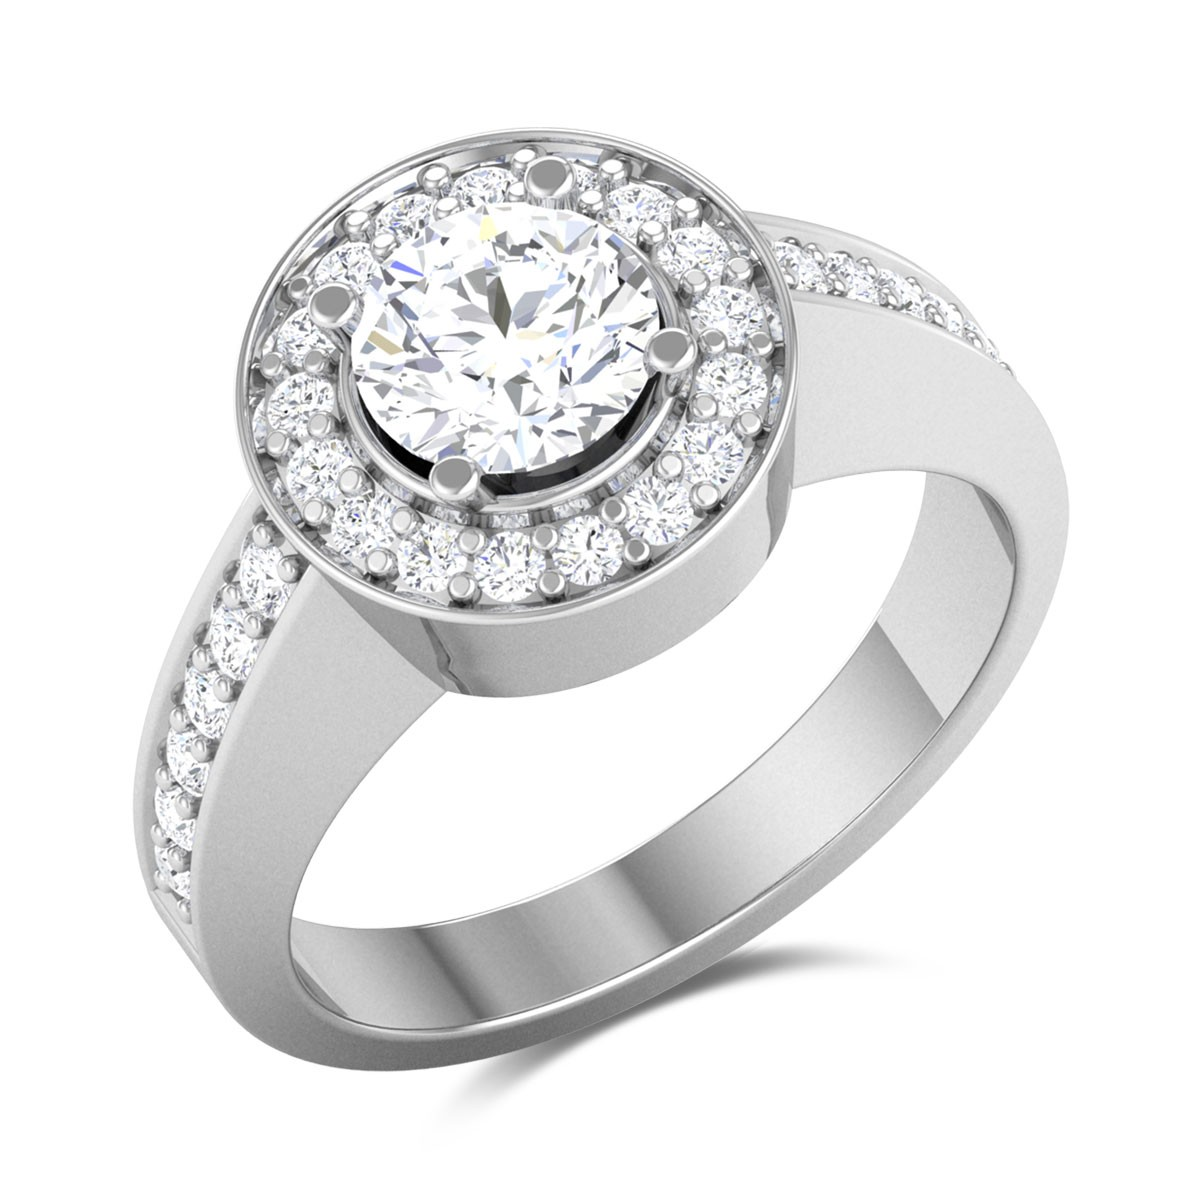 Cerulean Sky Solitaire Ring